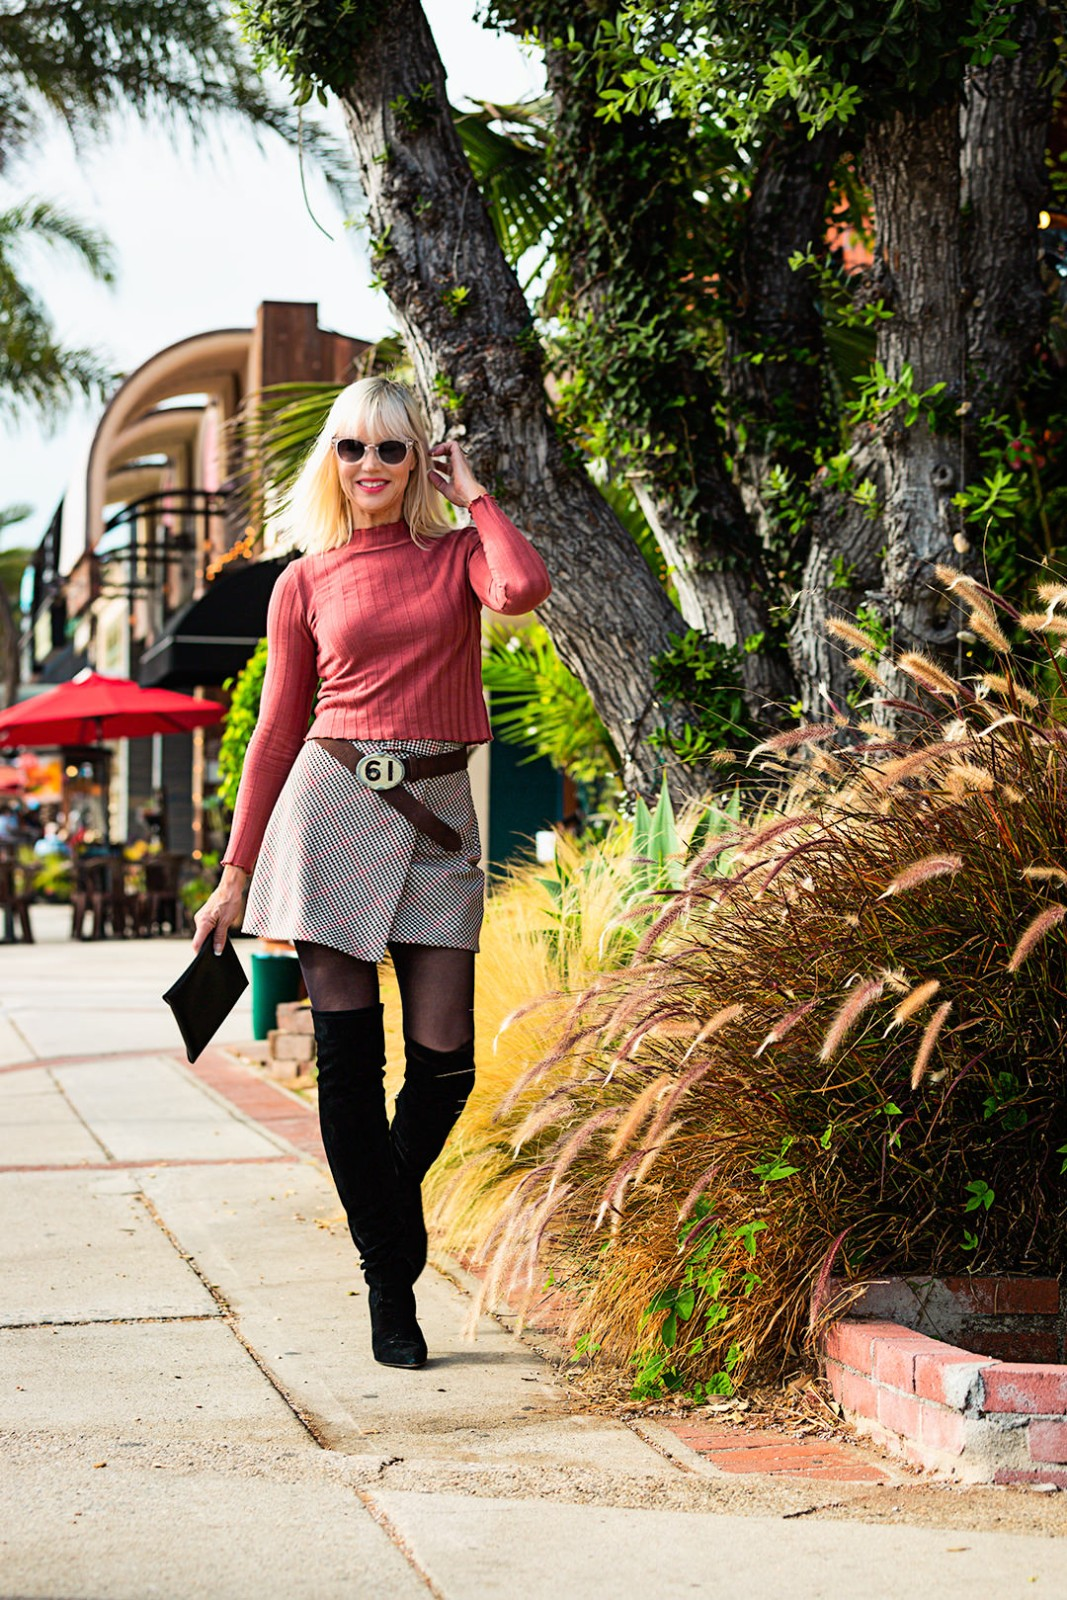 Catherine walking in Redondo Beach